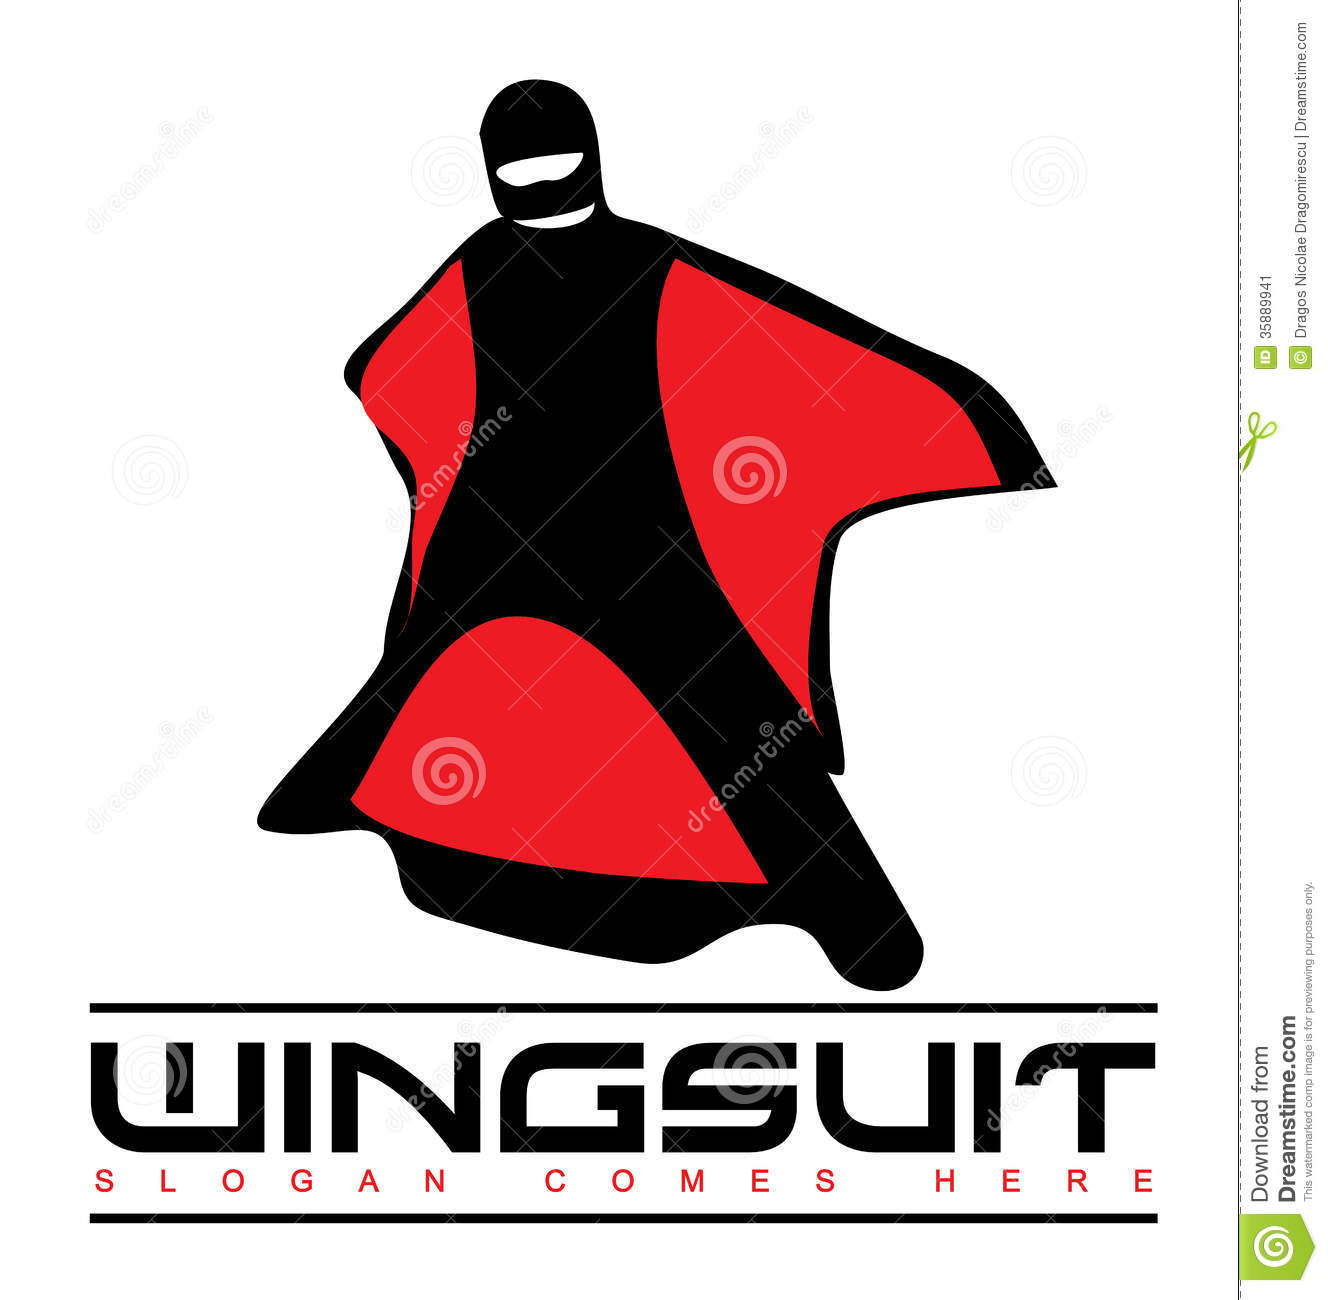 ... for wingsuit proximity terrain flying, skydiving or base jumping